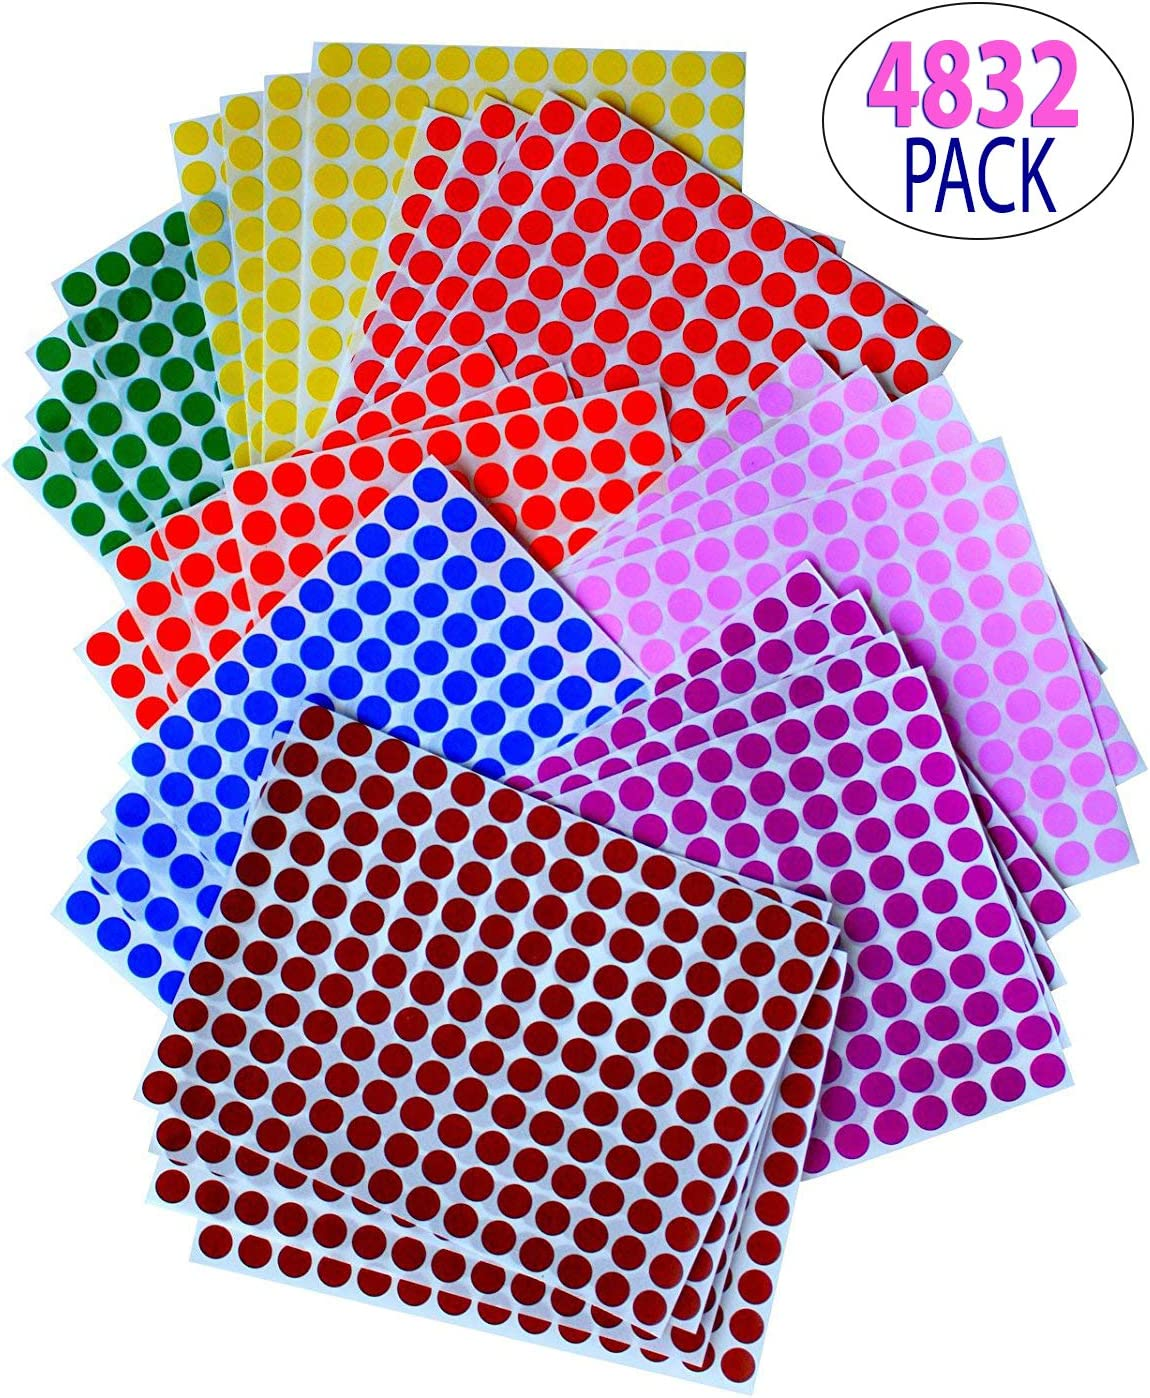 KIDS COLORED ROUND DOTS 3/8 inch (0.375) 8 COLORS - 32 SHEETS -10mm - Arts, Crafts, Fun and Games Stickers - by Royal Green: Amazon.es: Juguetes y juegos